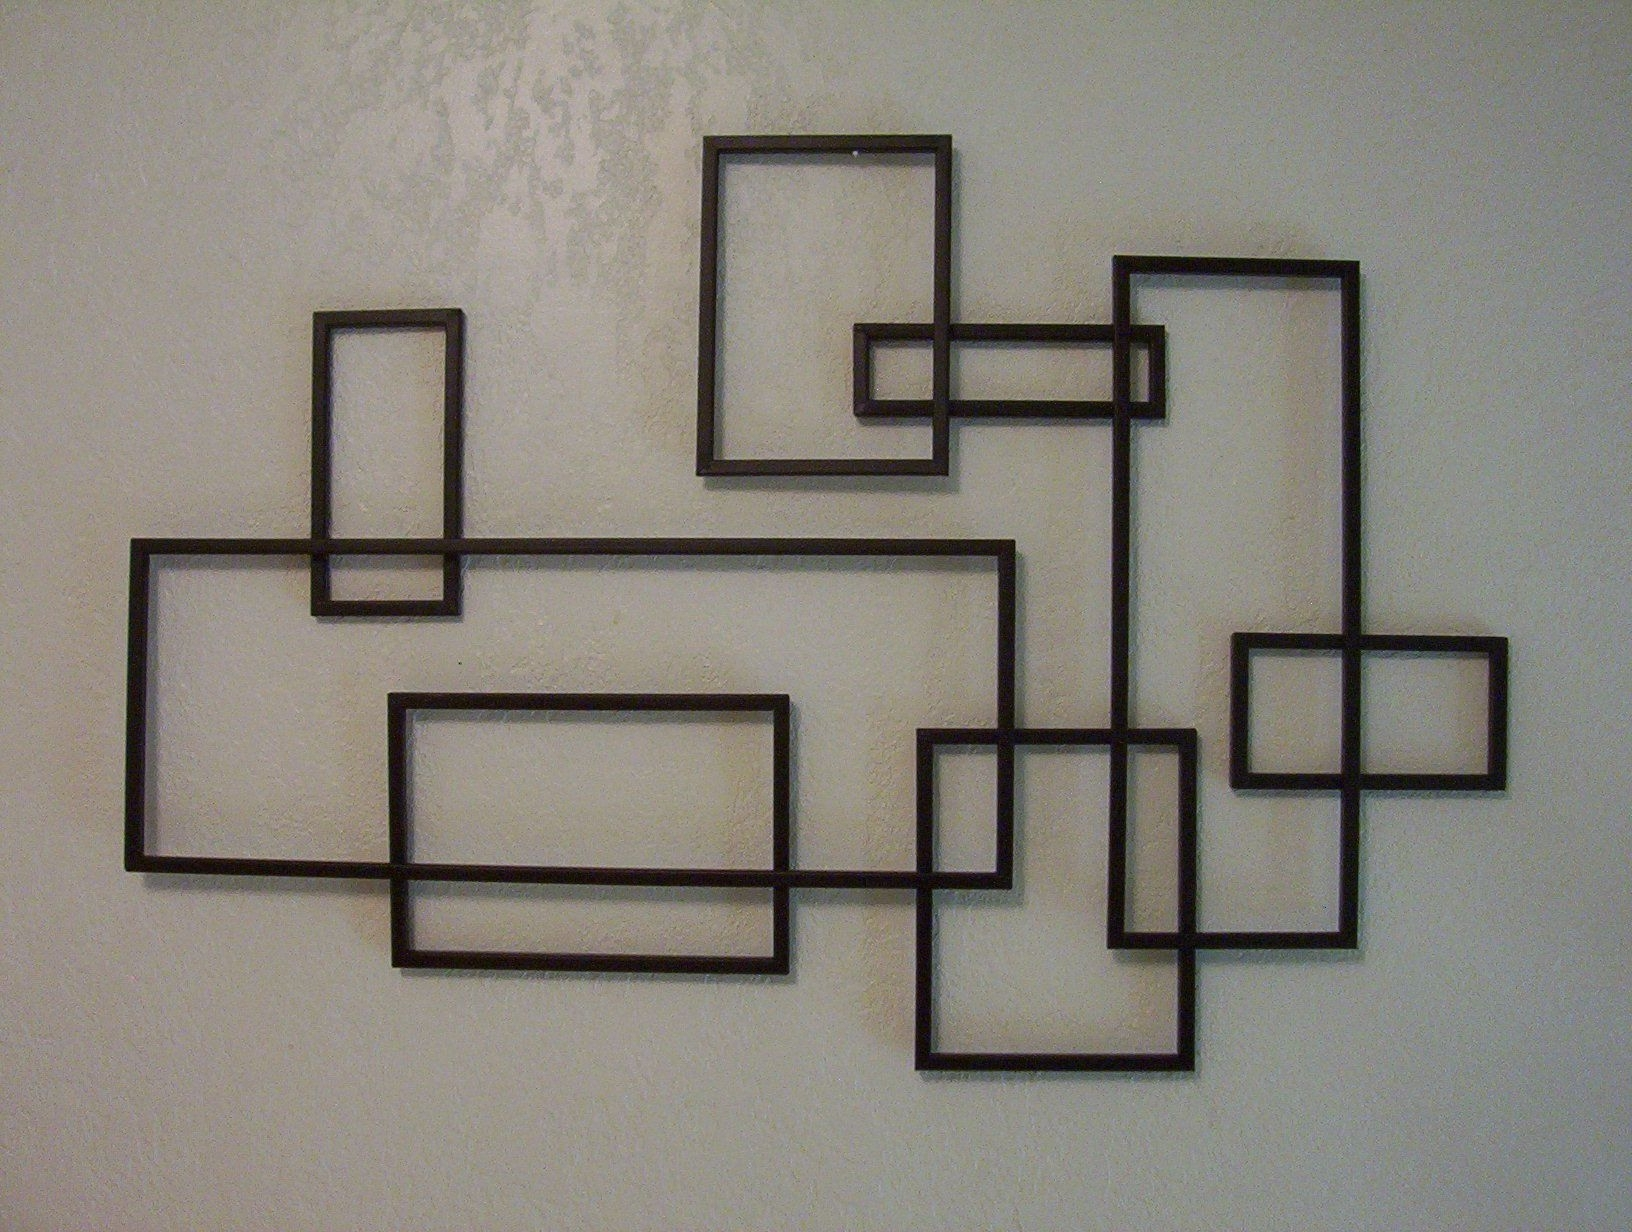 Mid Century Modern ~ De Stijl Style Geometric Metal Wall Sculpture With 2017 Mid Century Modern Wall Art (View 5 of 20)